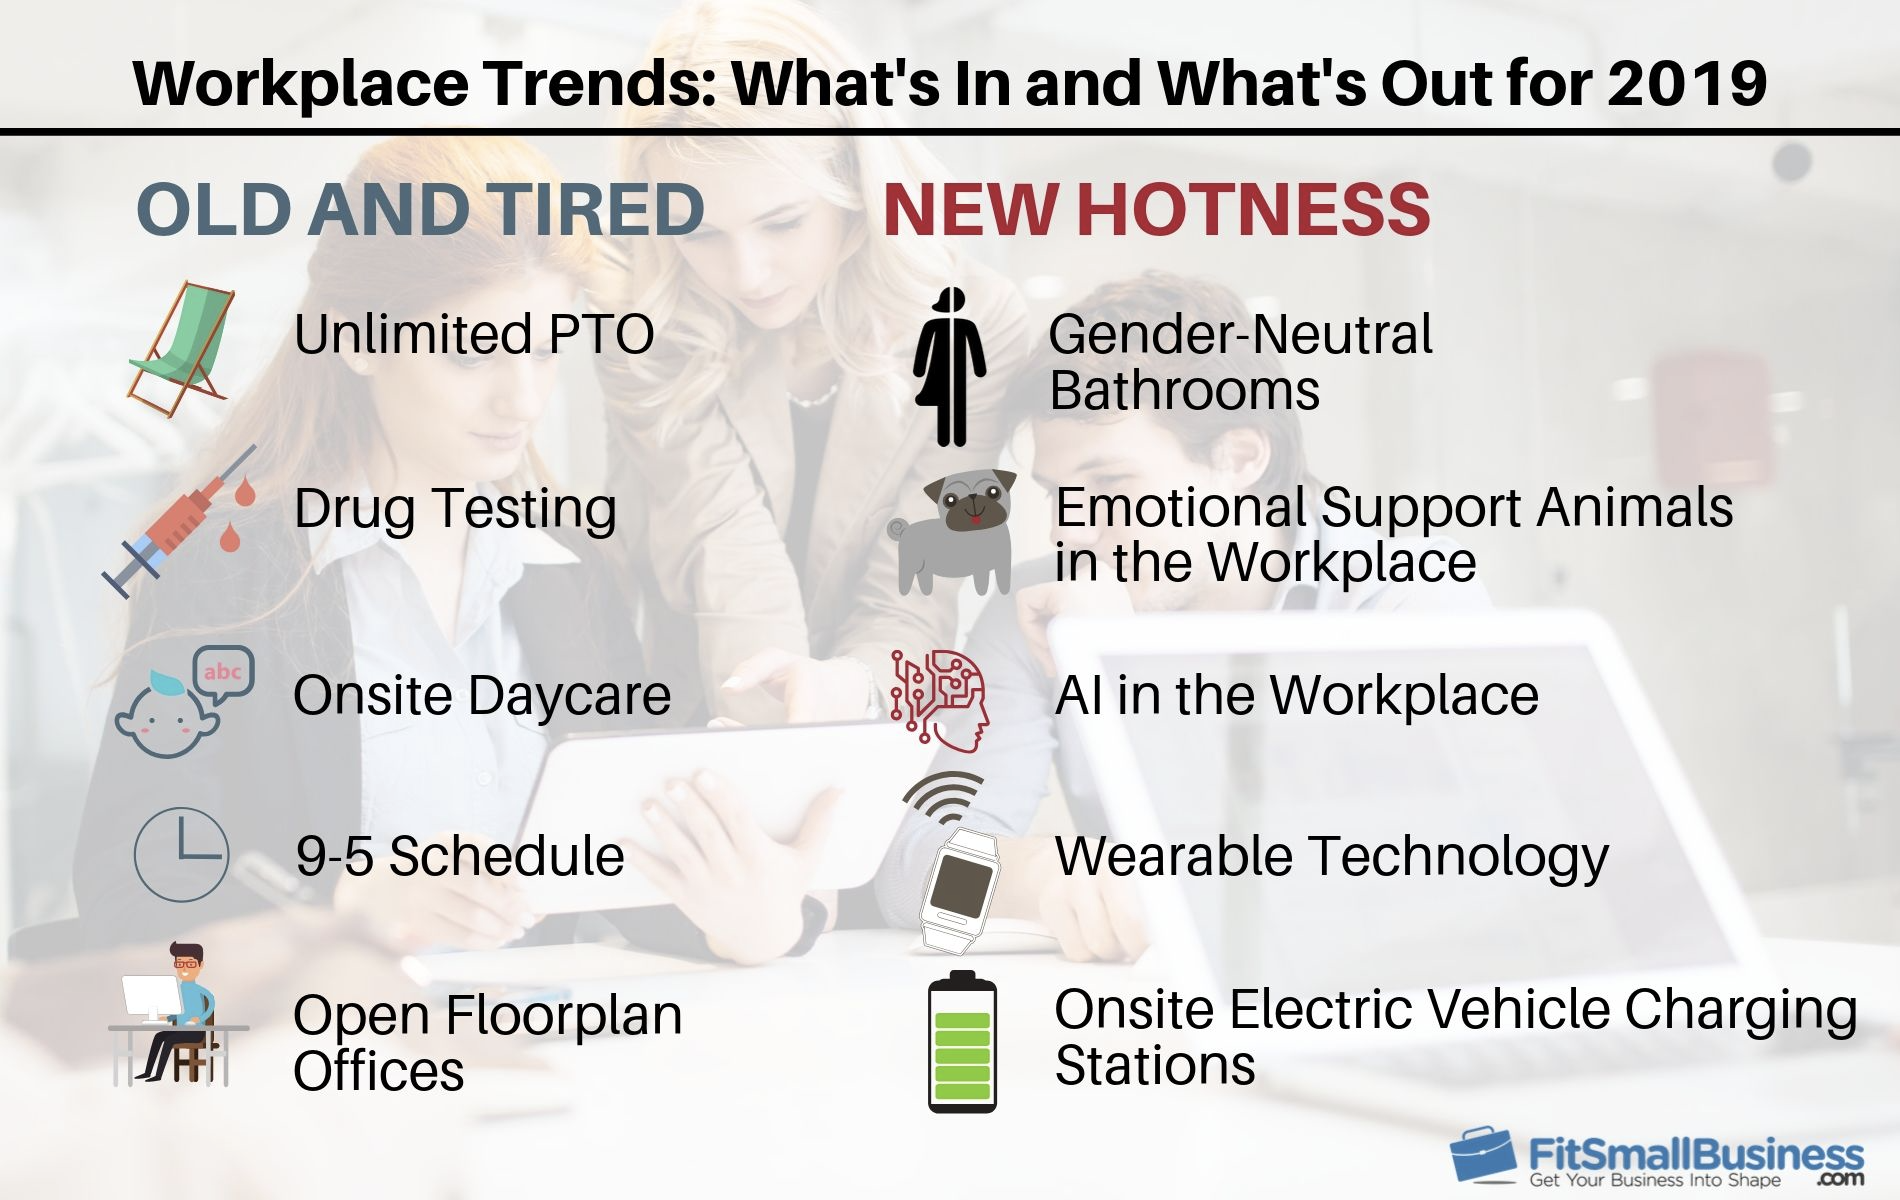 a graphic showing old and new trends in the workplace.